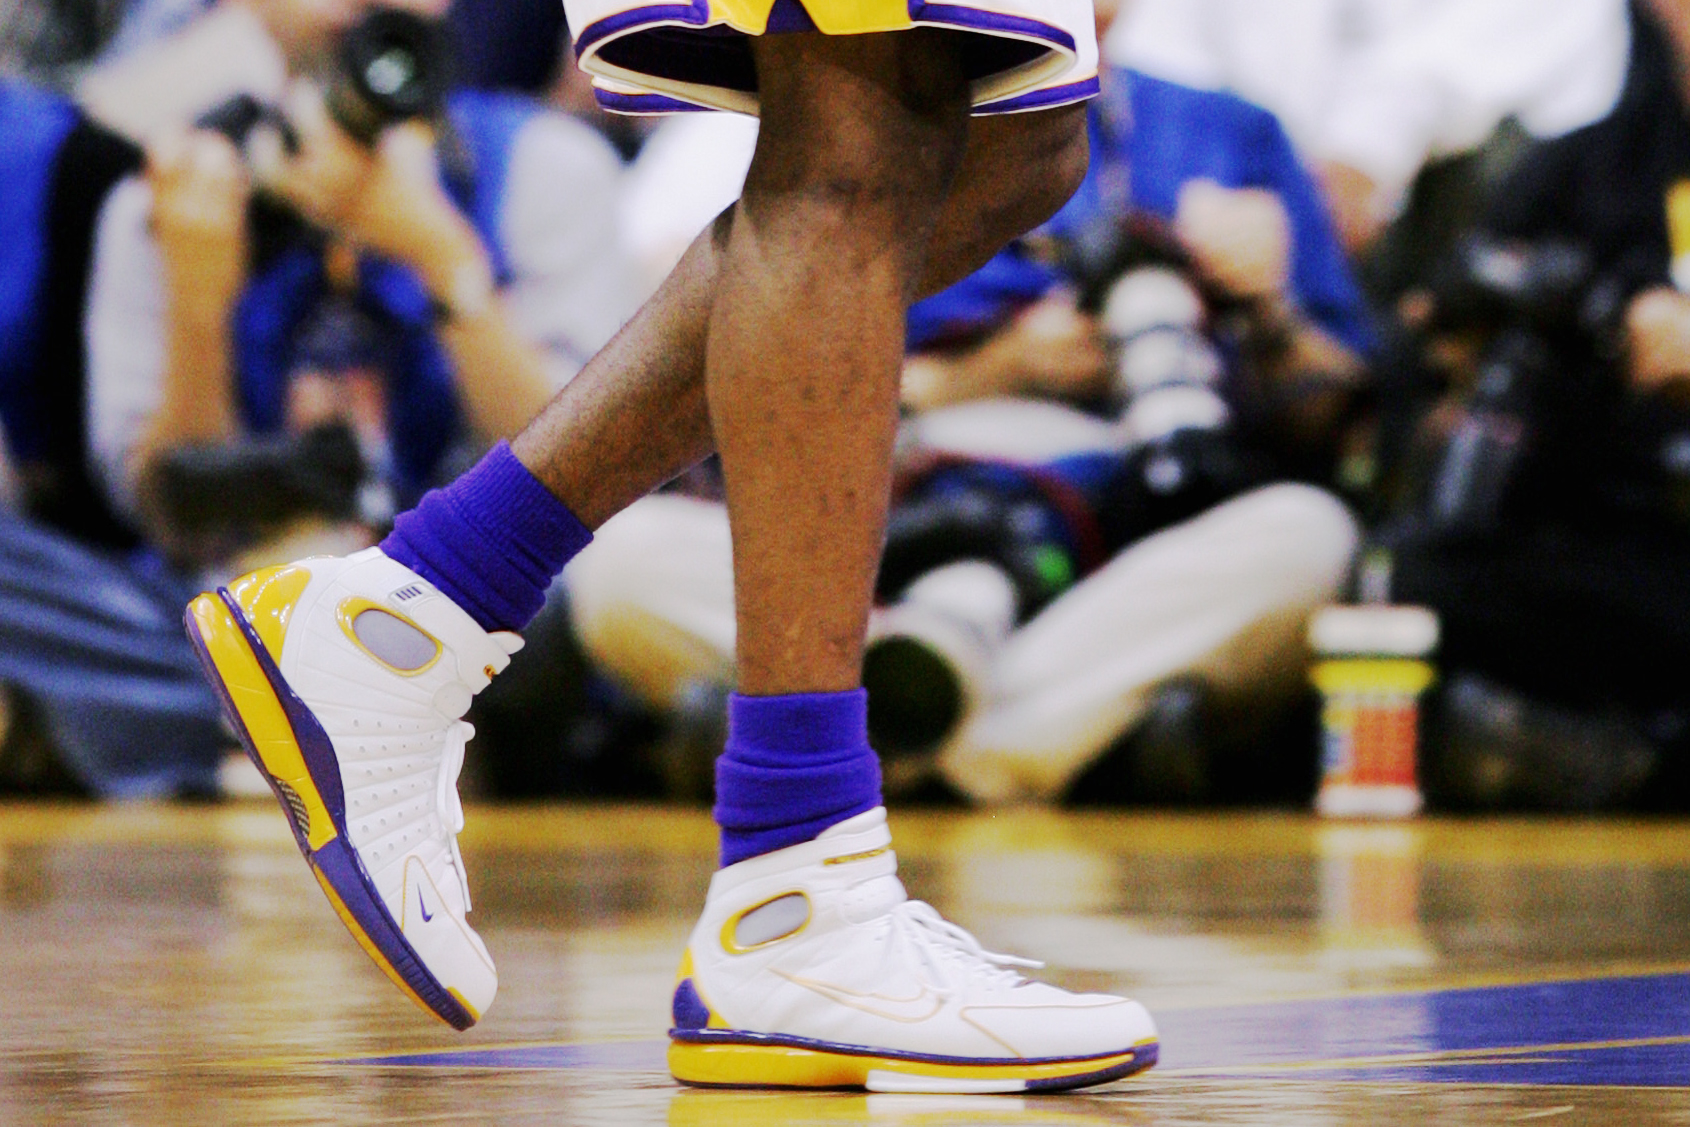 617daea786e Nike Air Zoom Huarache 2K4. Kobe Bryant of the Los Angeles Lakers in Game  ...